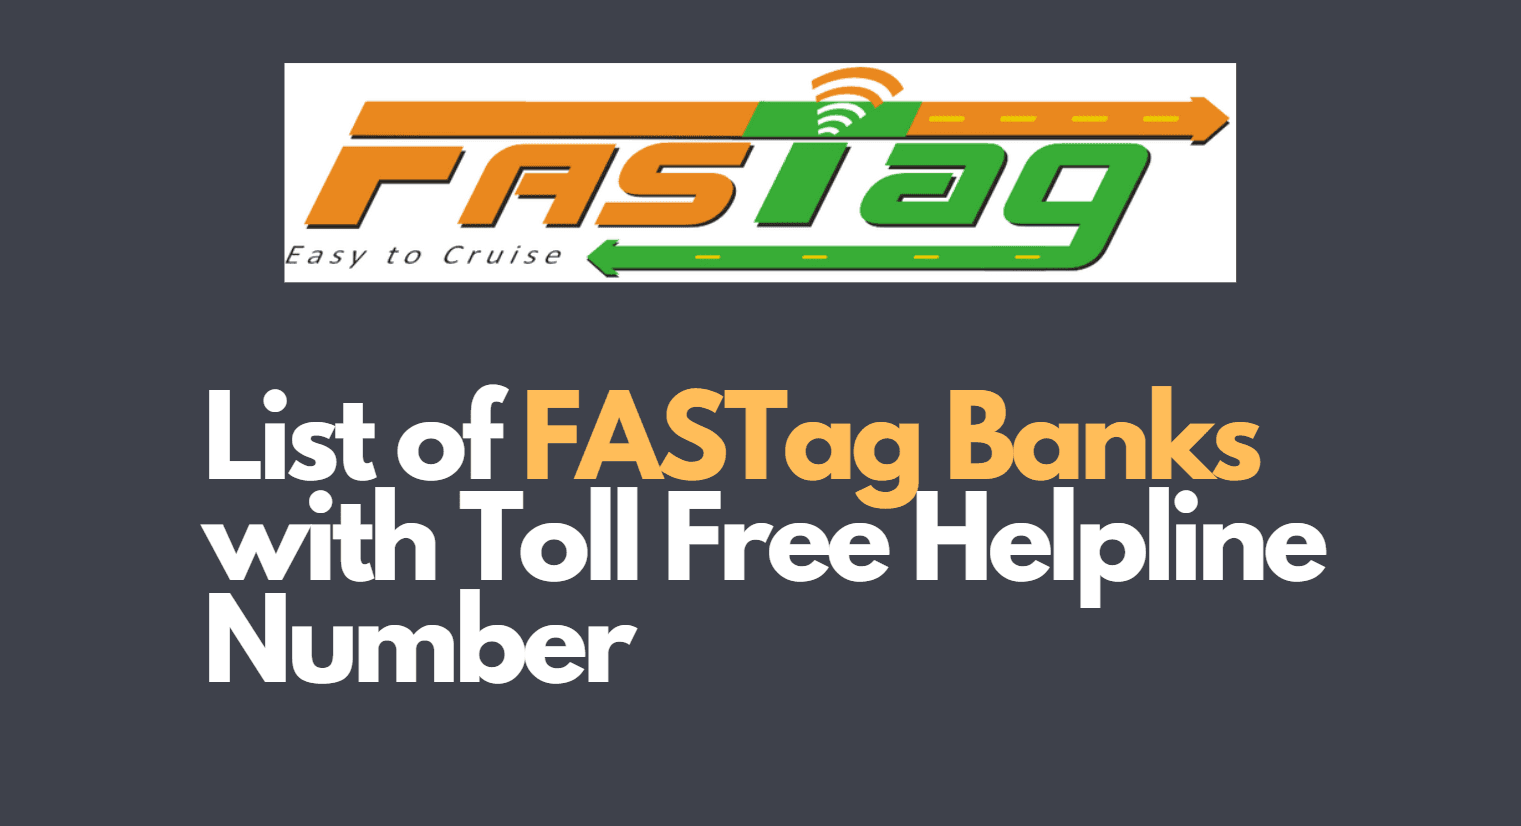 List of FASTag Banks with Toll Free Helpline Number